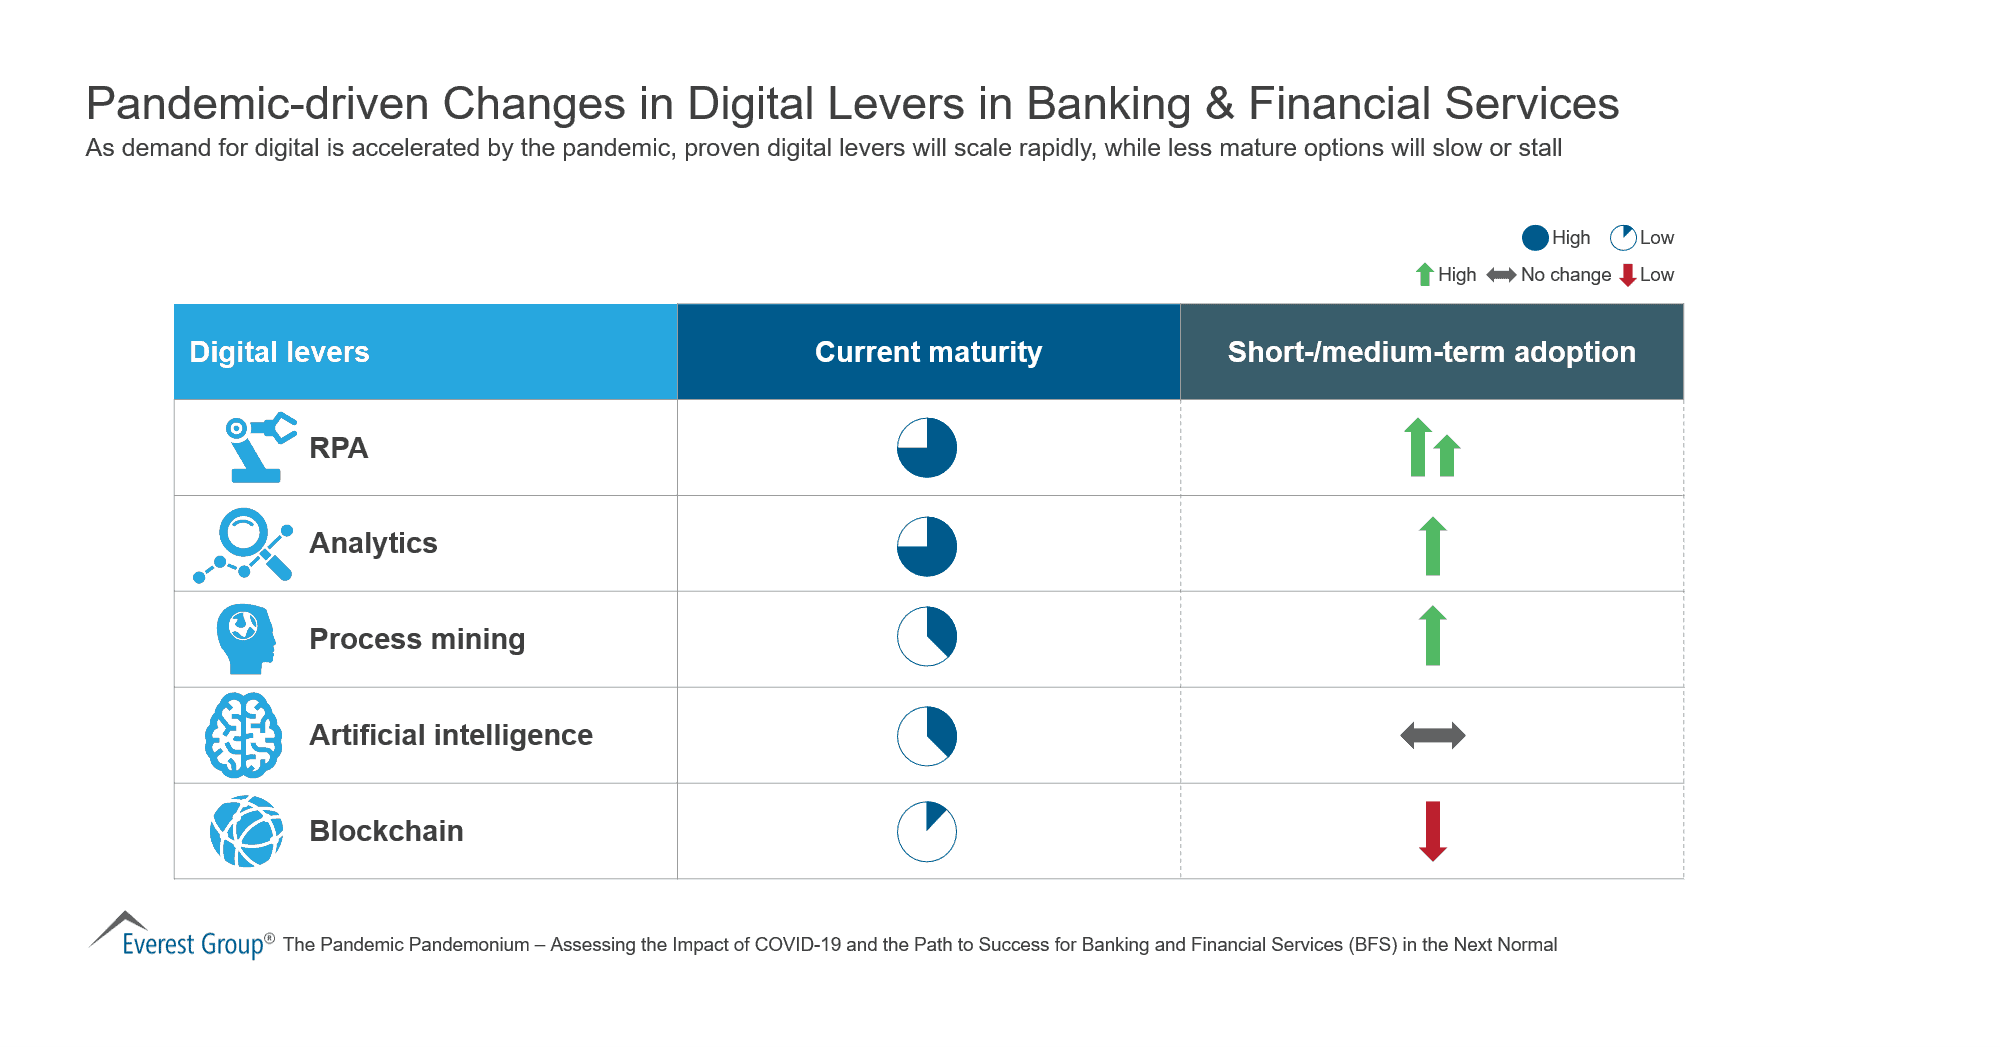 Pandemic-driven Changes in Digital Levers in Banking & Financial Services